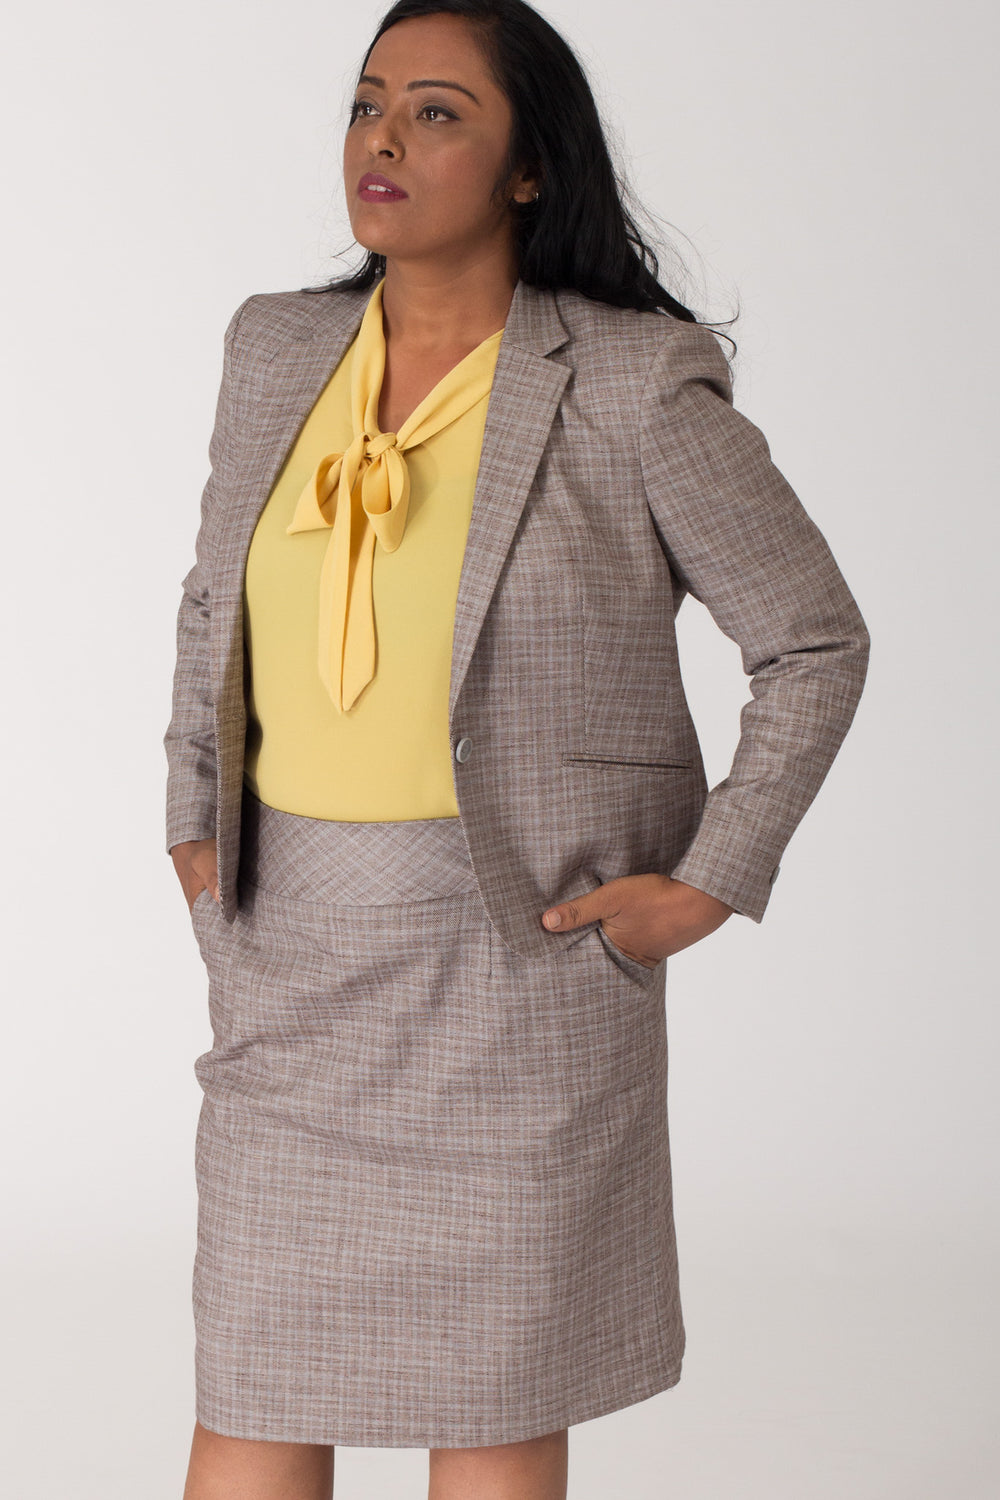 Cotton Formal Blazer for Working Women. Shop for formal business suits and formal trousers, dresses online at www.intermod.in